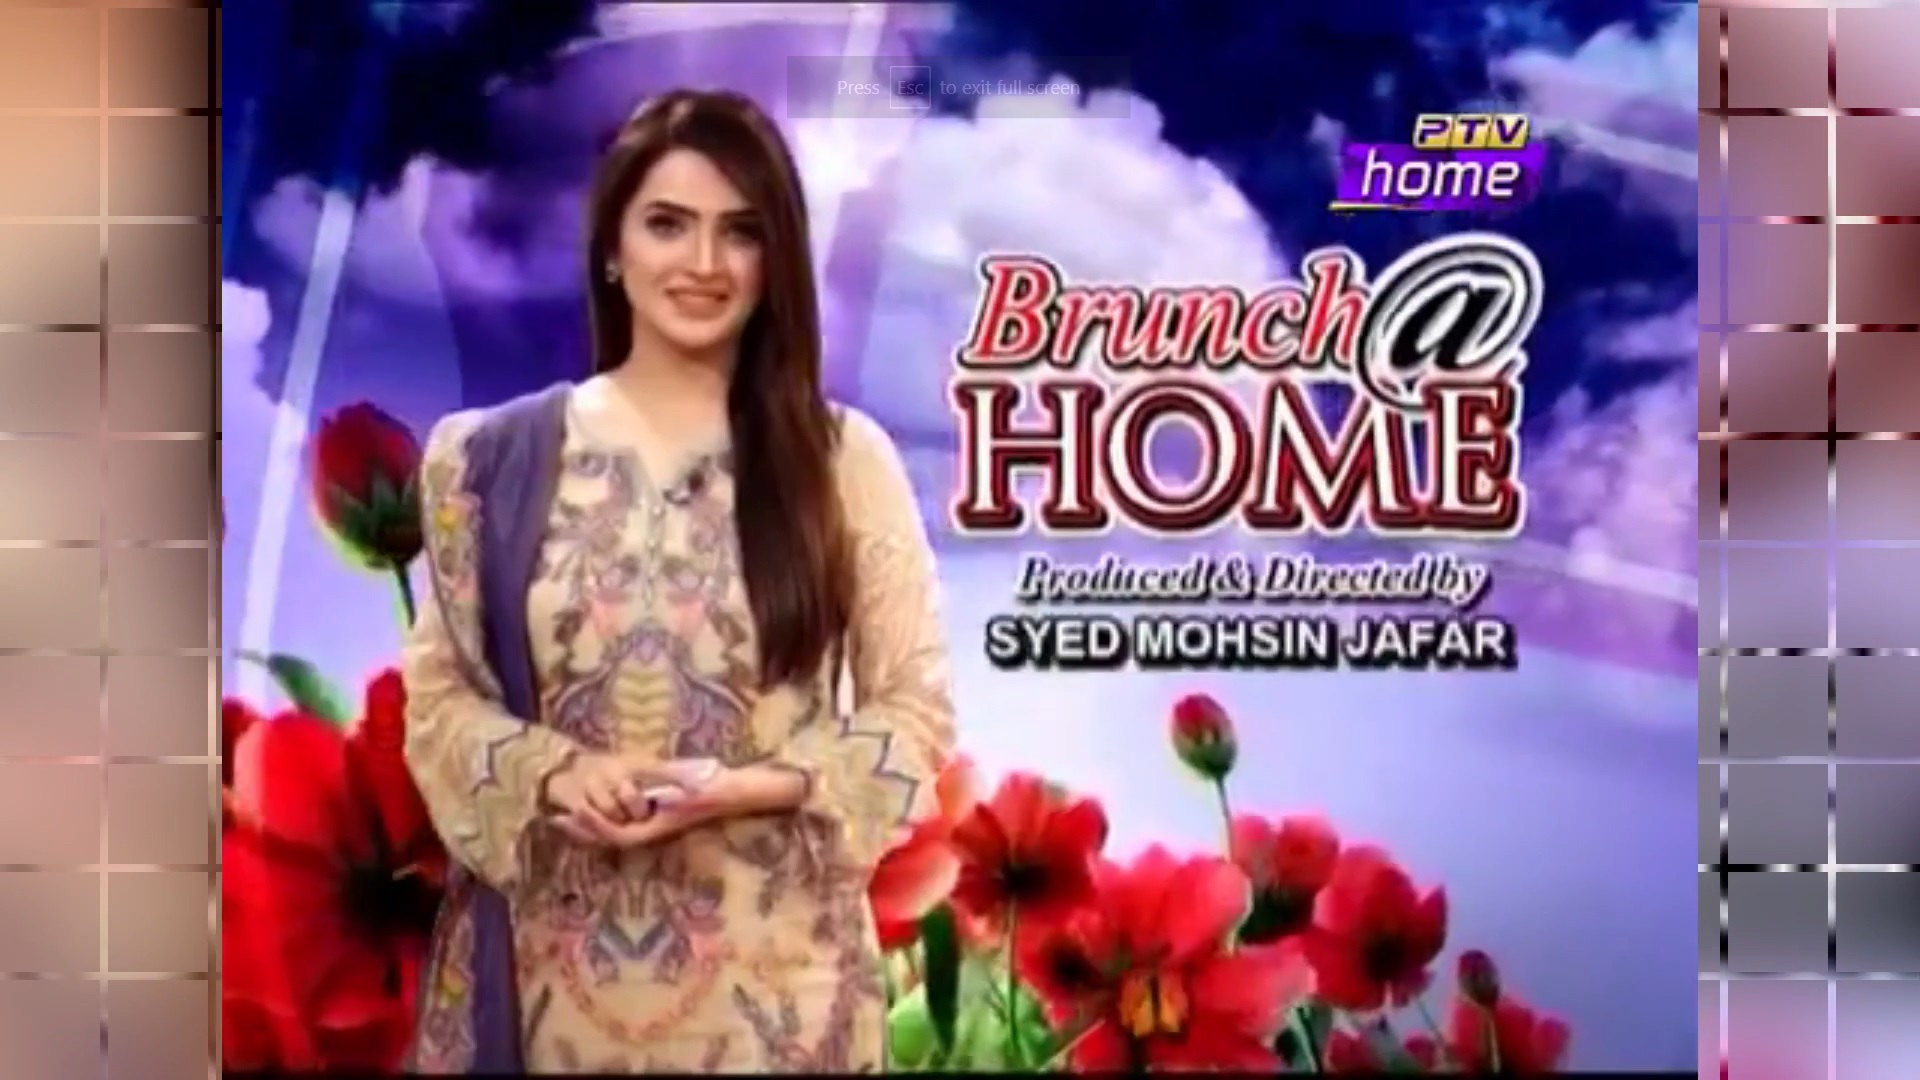 Organic Valley, Pakistan Special Sponsorship at PTV Homes Show Brunch at Home